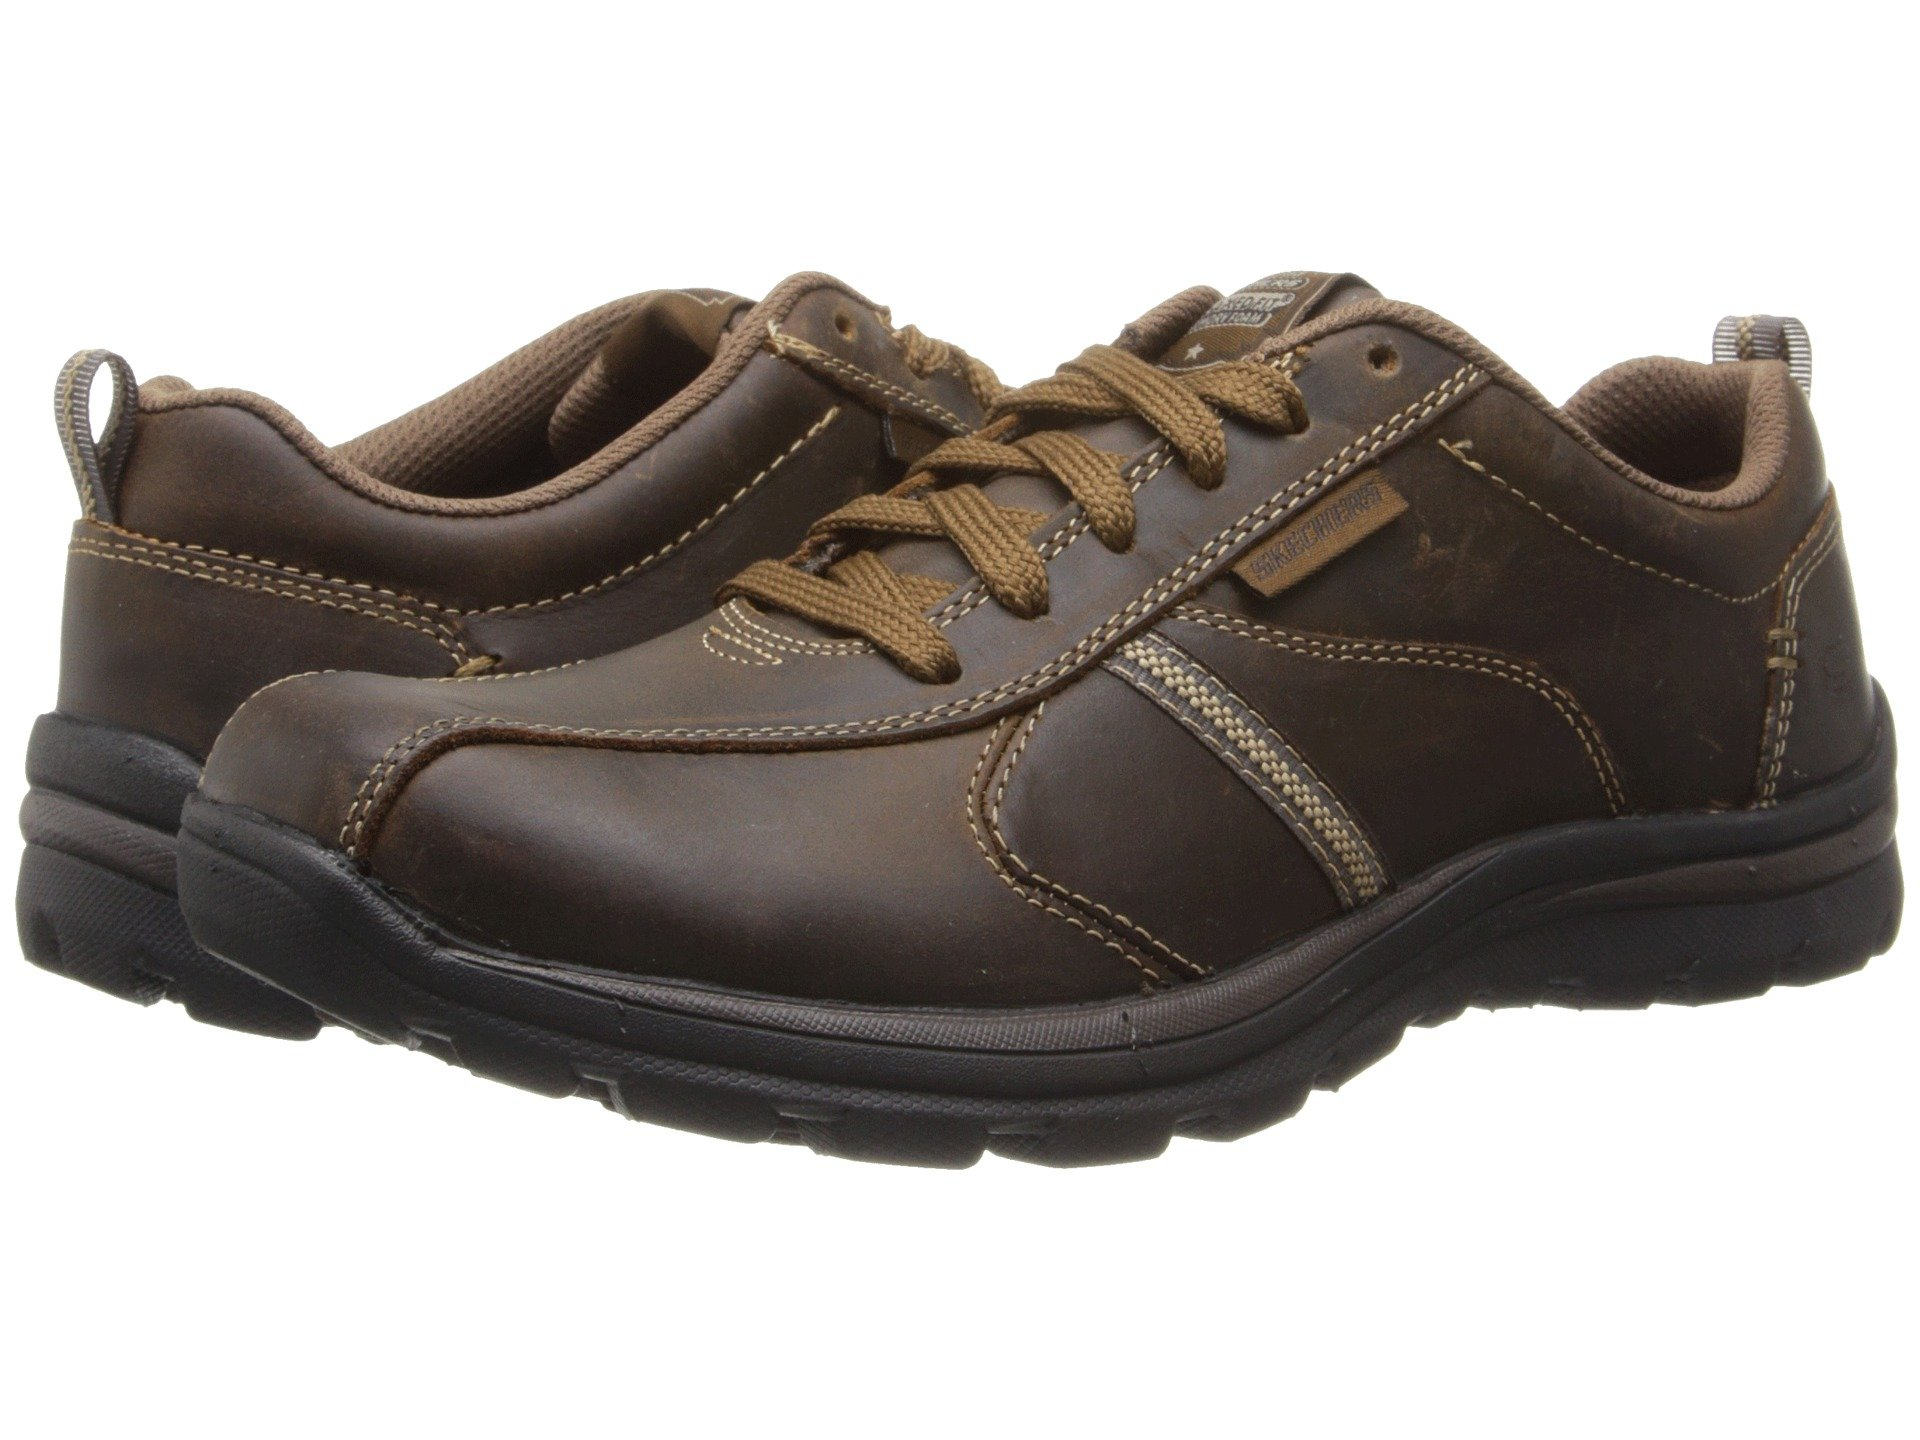 Skechers Relaxed Fit Superior Levoy At Zappos Com